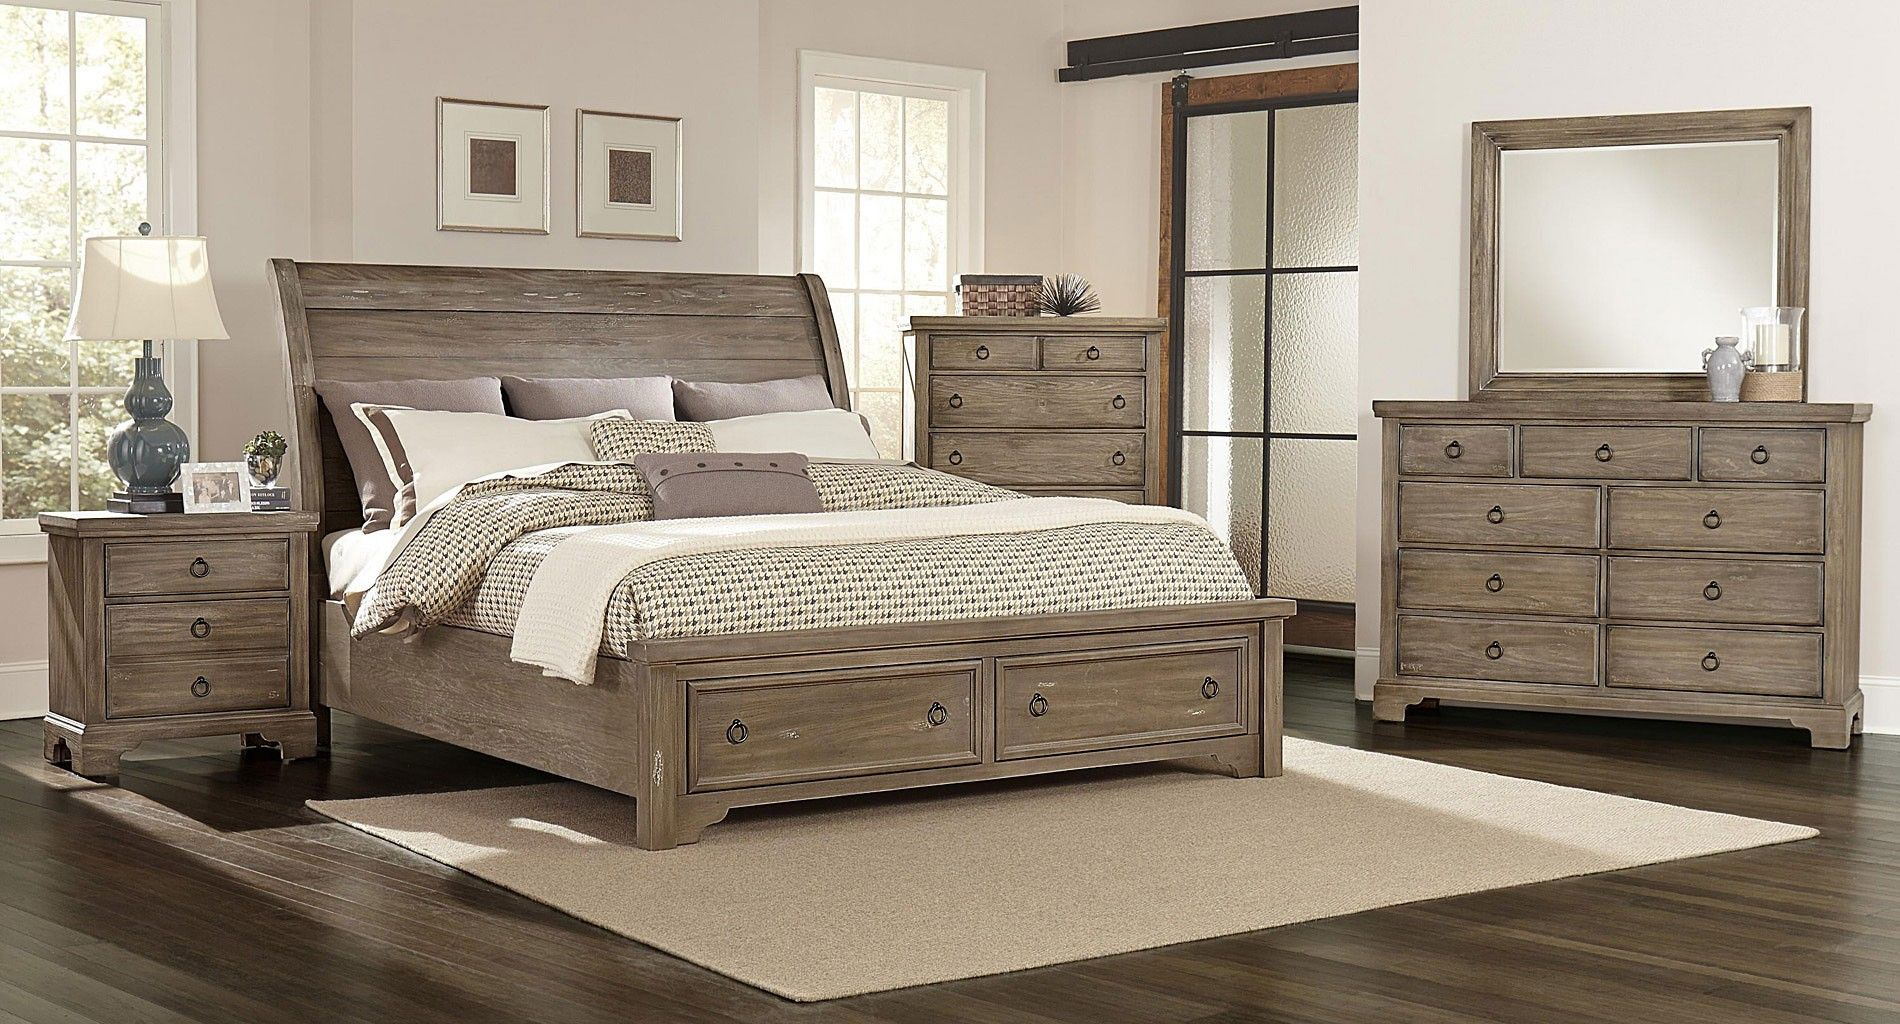 Whiskey Barrel Storage Bedroom Set (Rustic Gray) In 2019